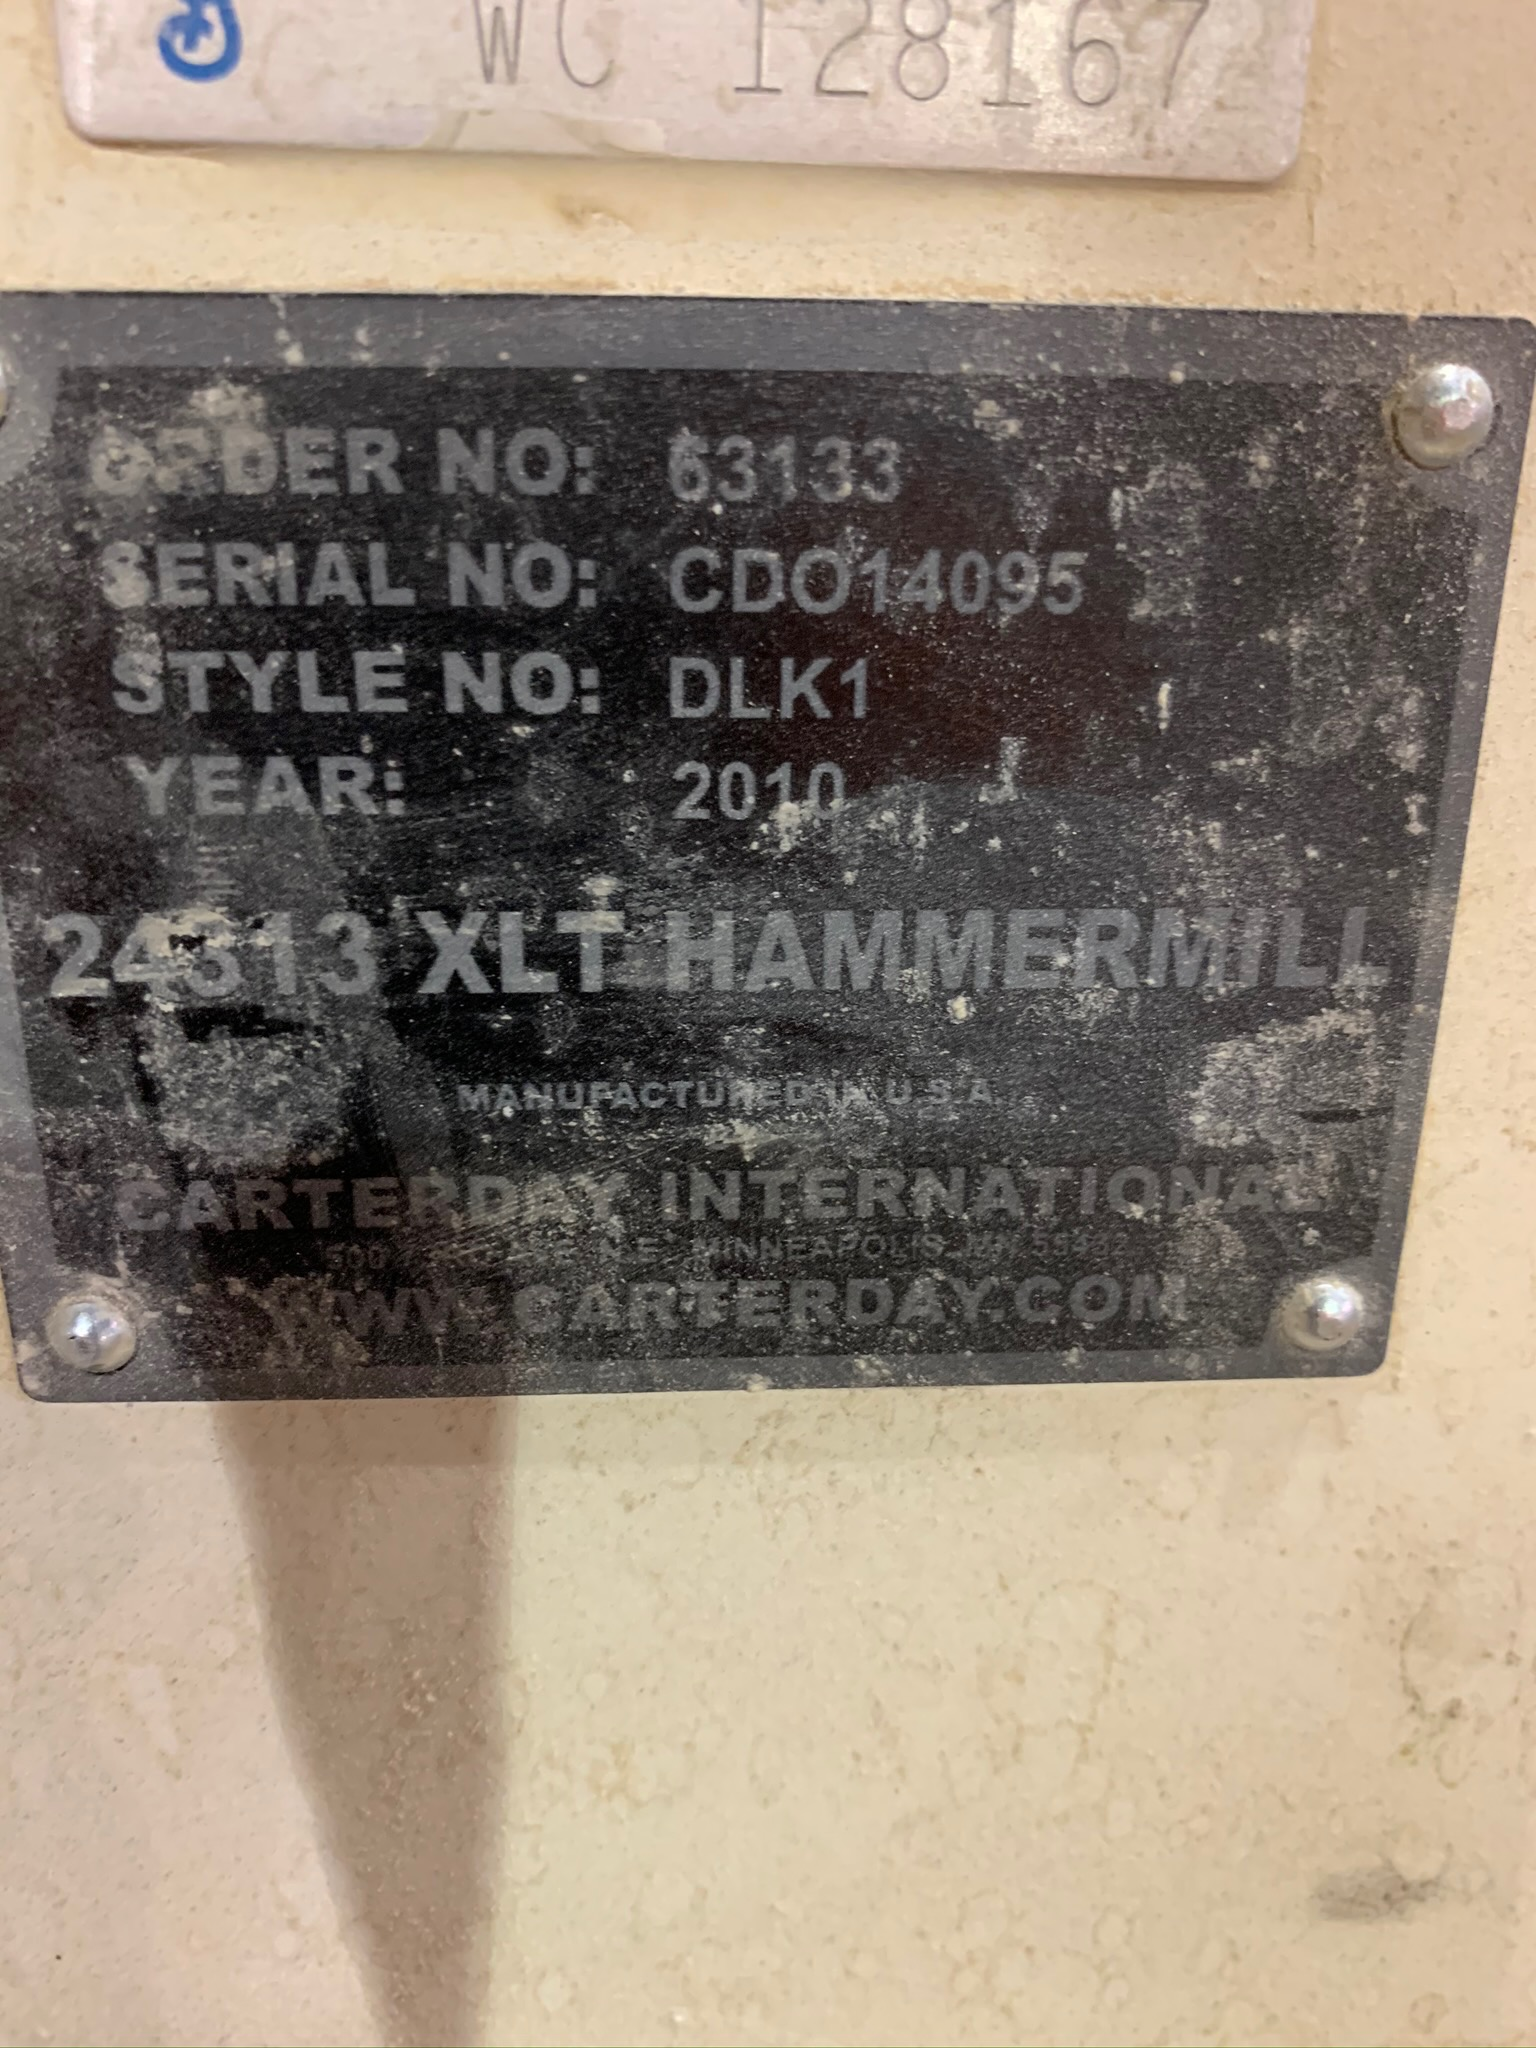 Carter Day Jacobson Hammermill Style DLK1 S/N CDO14095 24313 XLT Hammermill 60 HP With Magnet (Riggi - Image 3 of 6